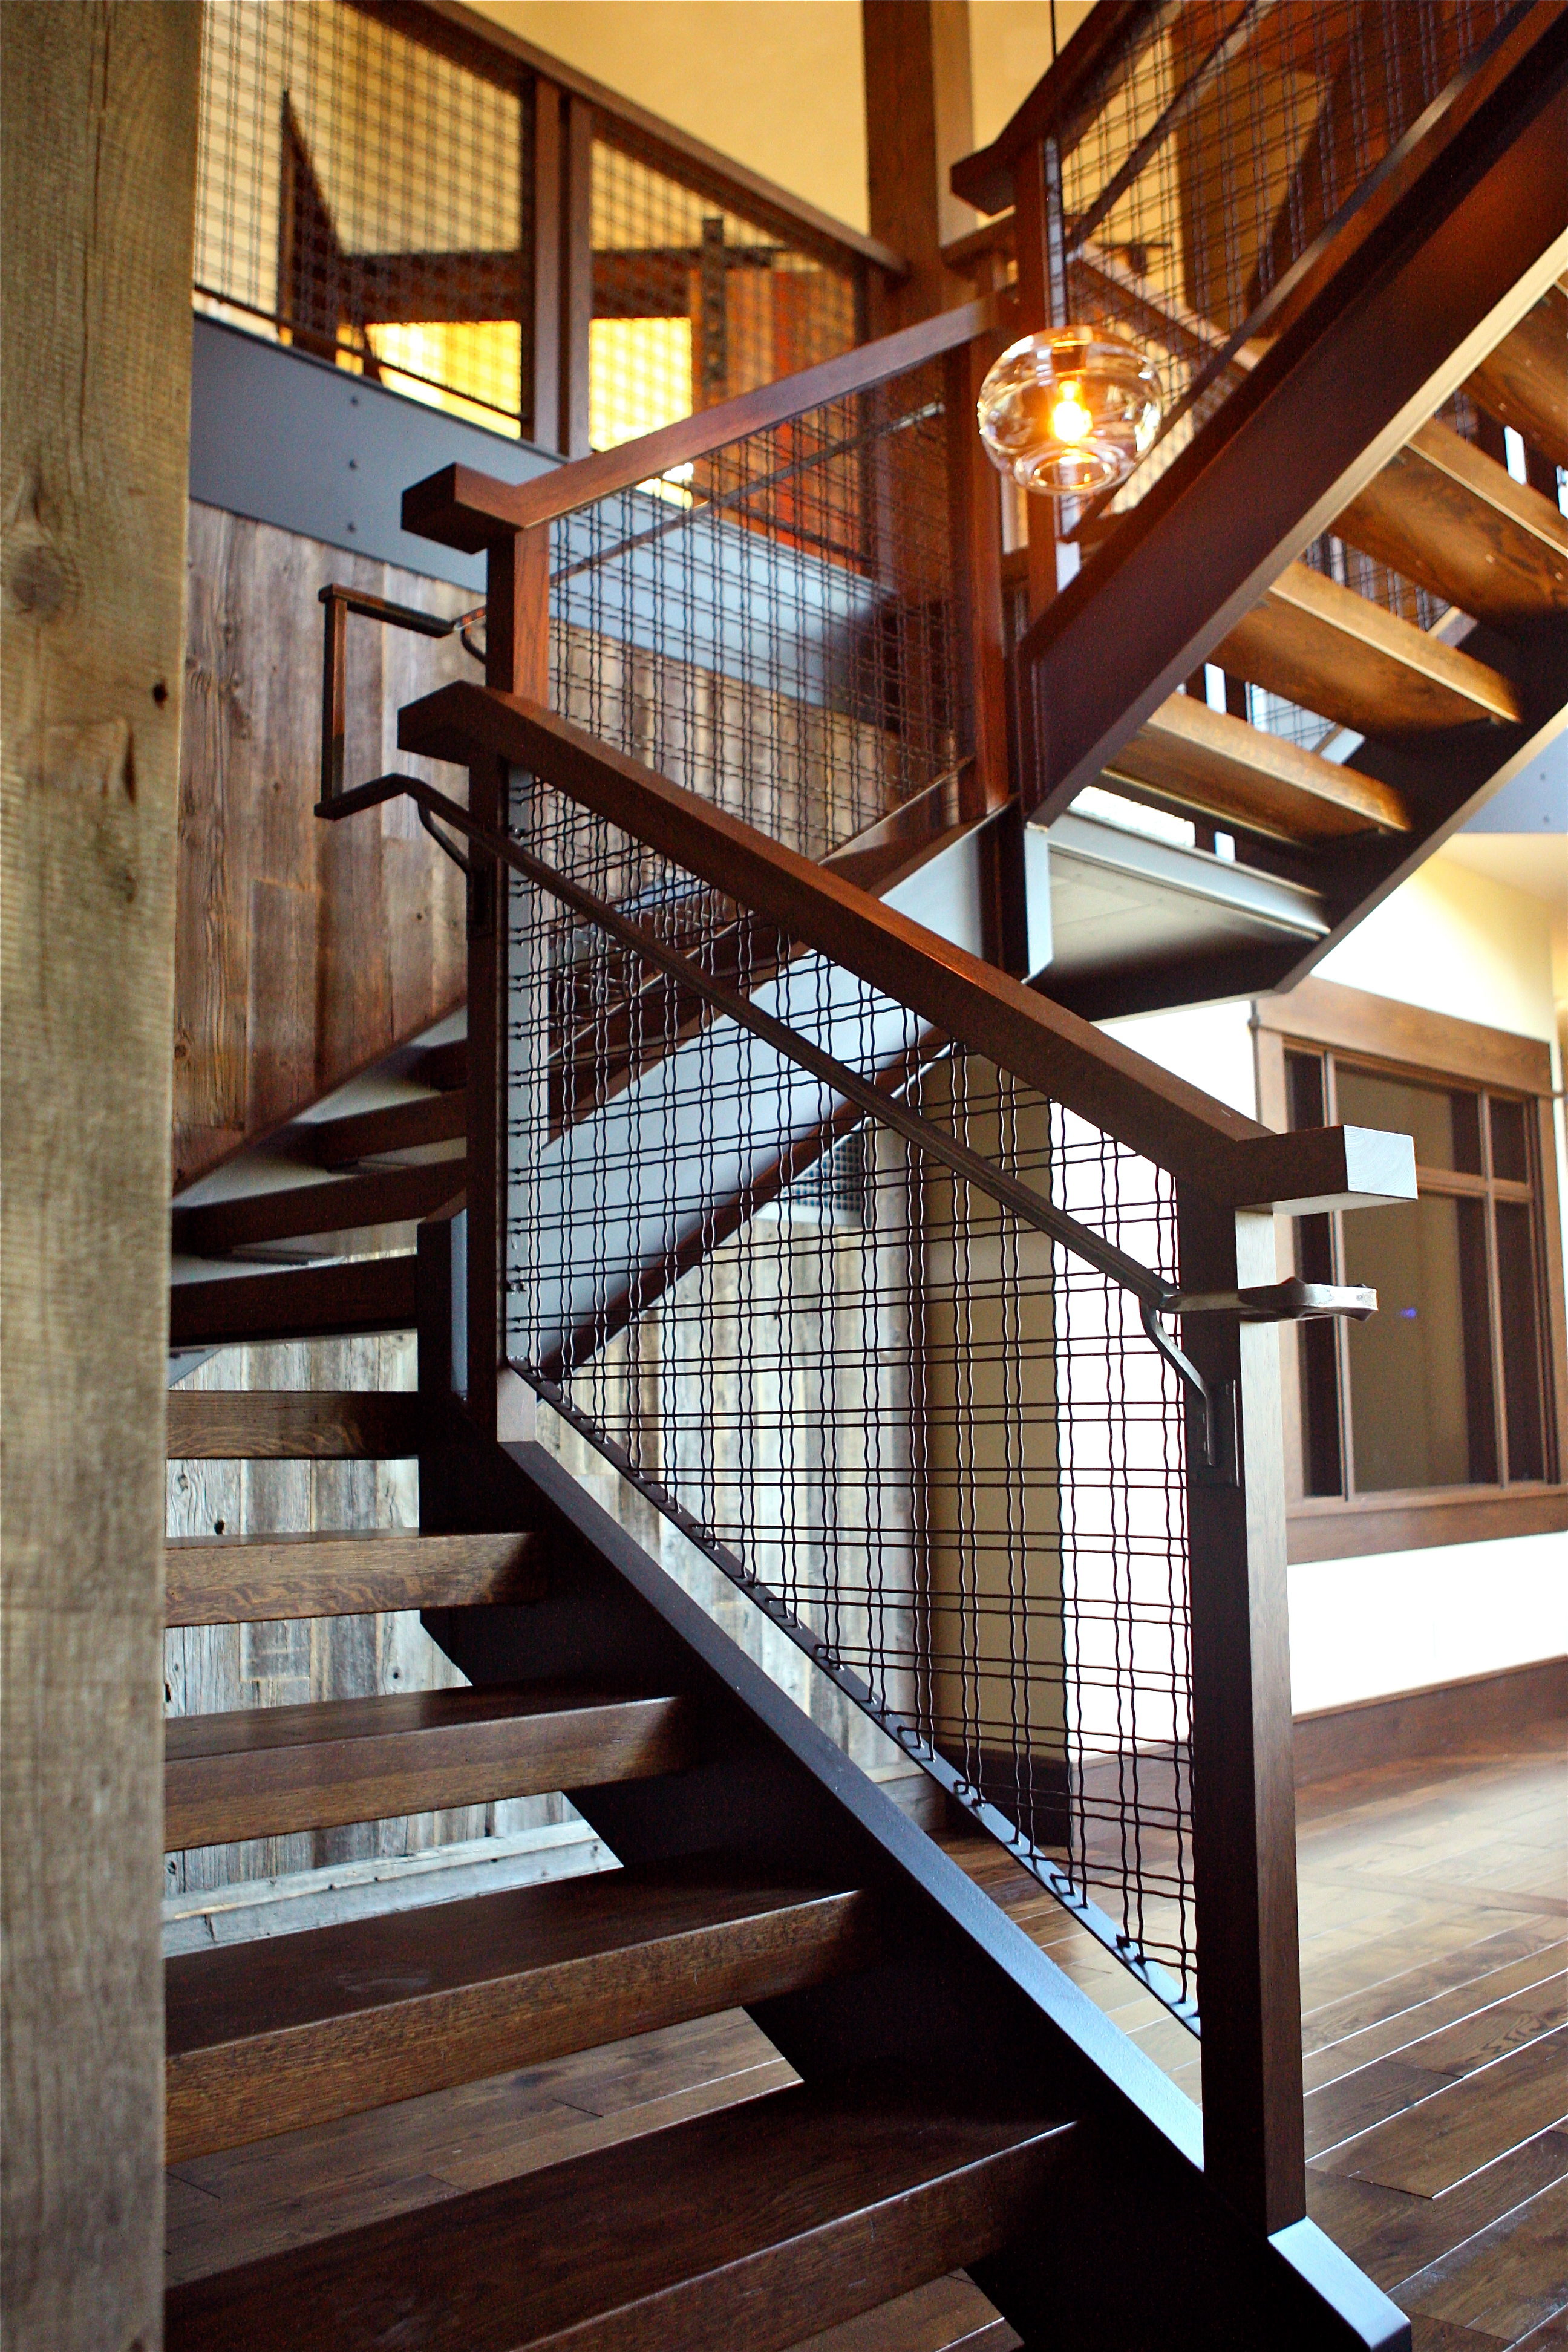 M22-8 architectural woven wire mesh infill on this staircase maintains the uninterrupted sight lines in this home.